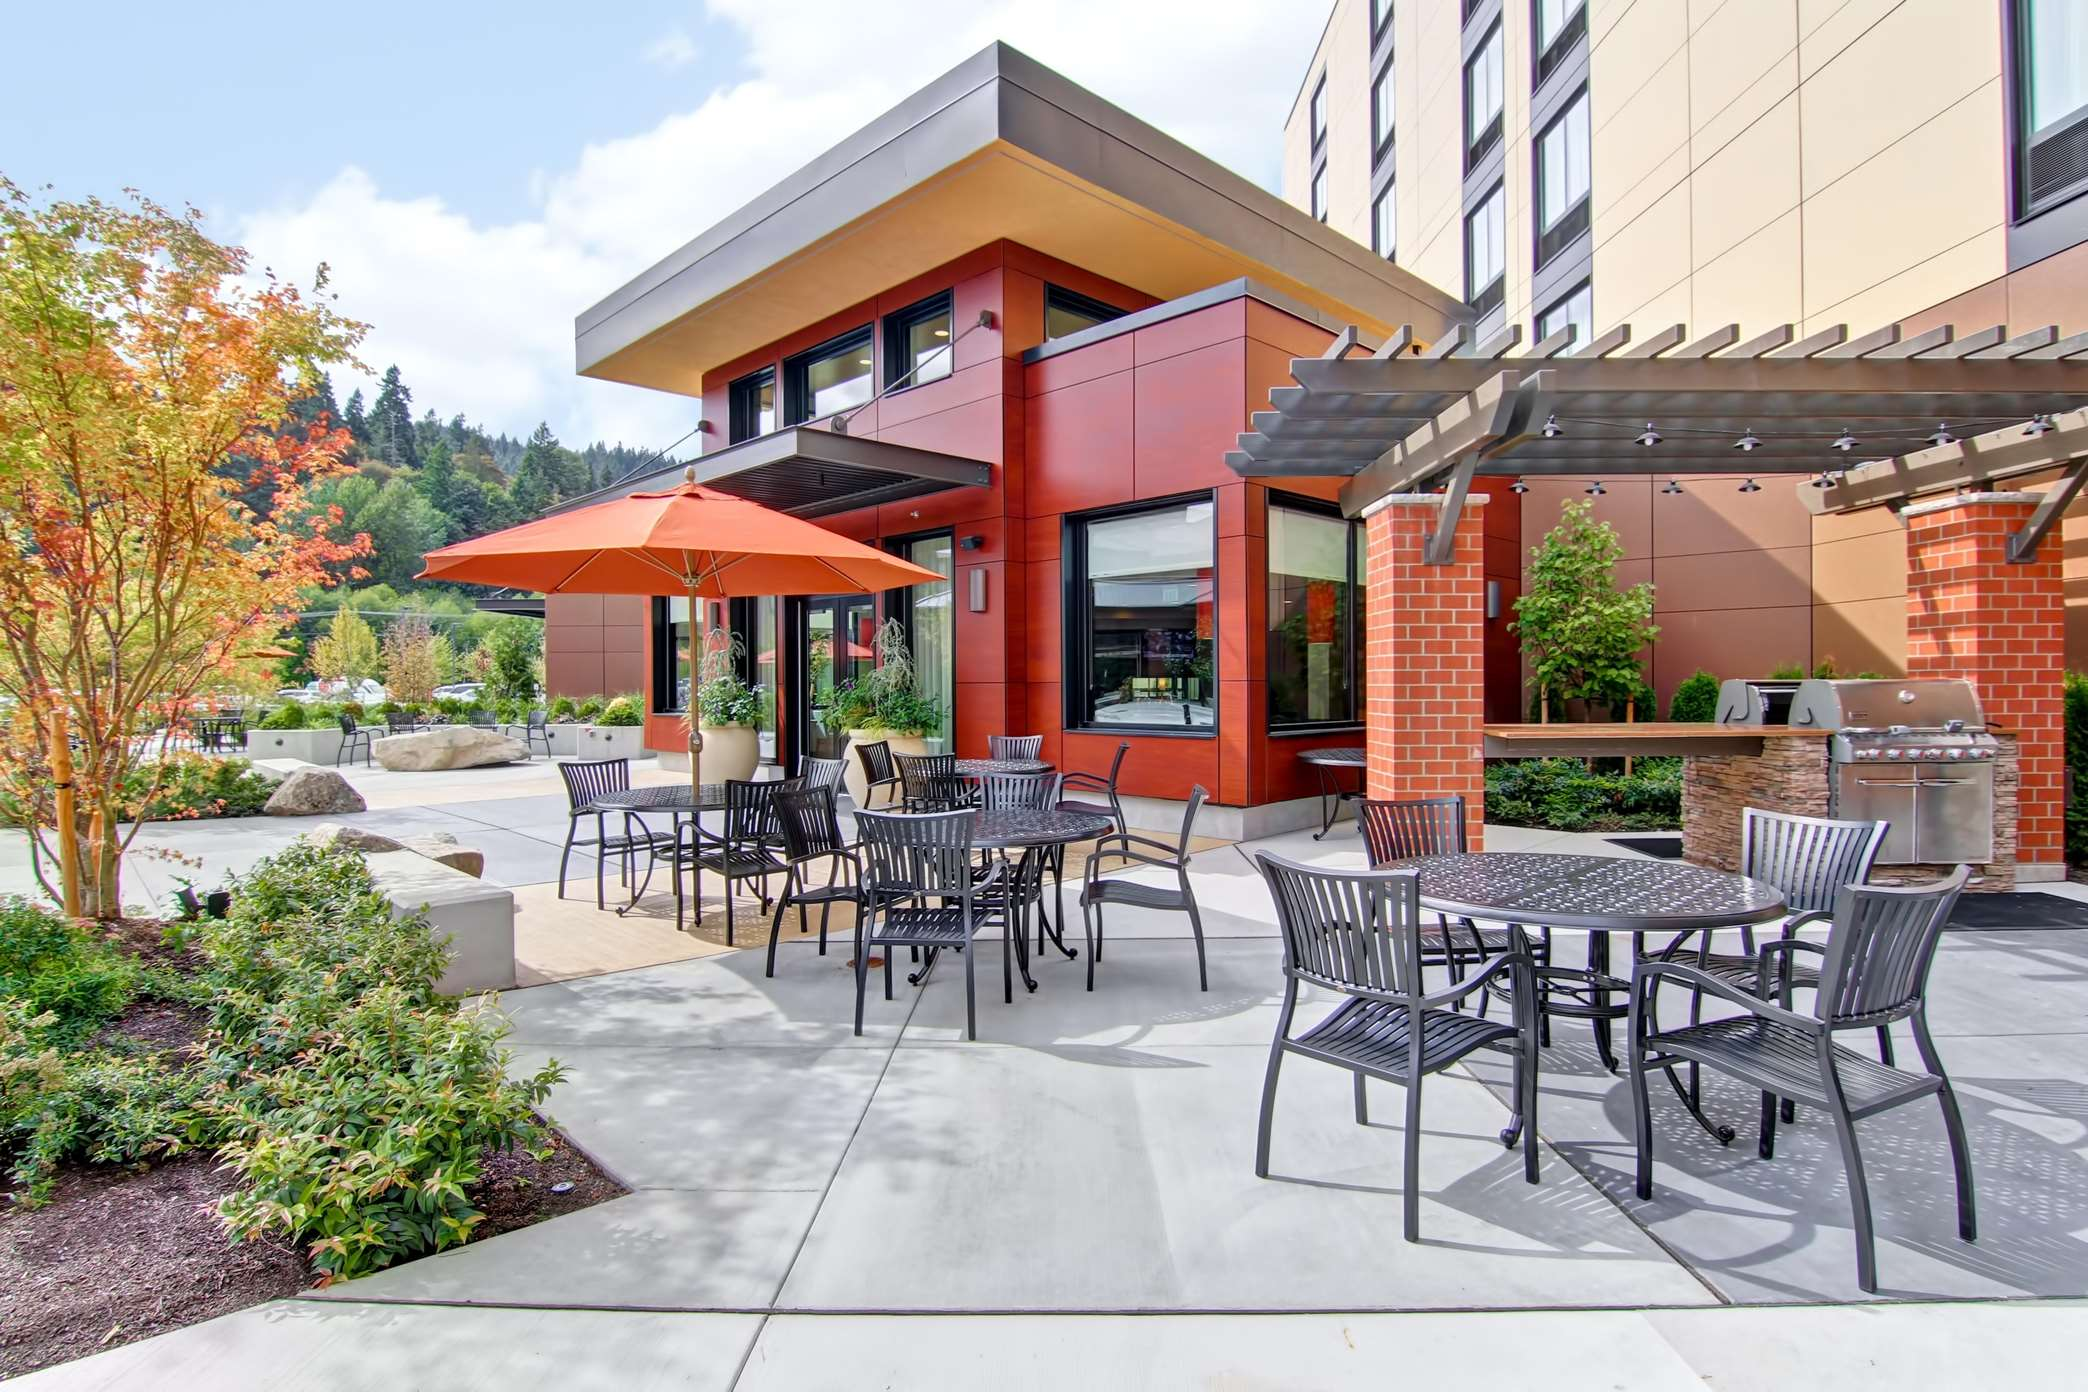 Homewood Suites by Hilton Seattle-Issaquah image 0